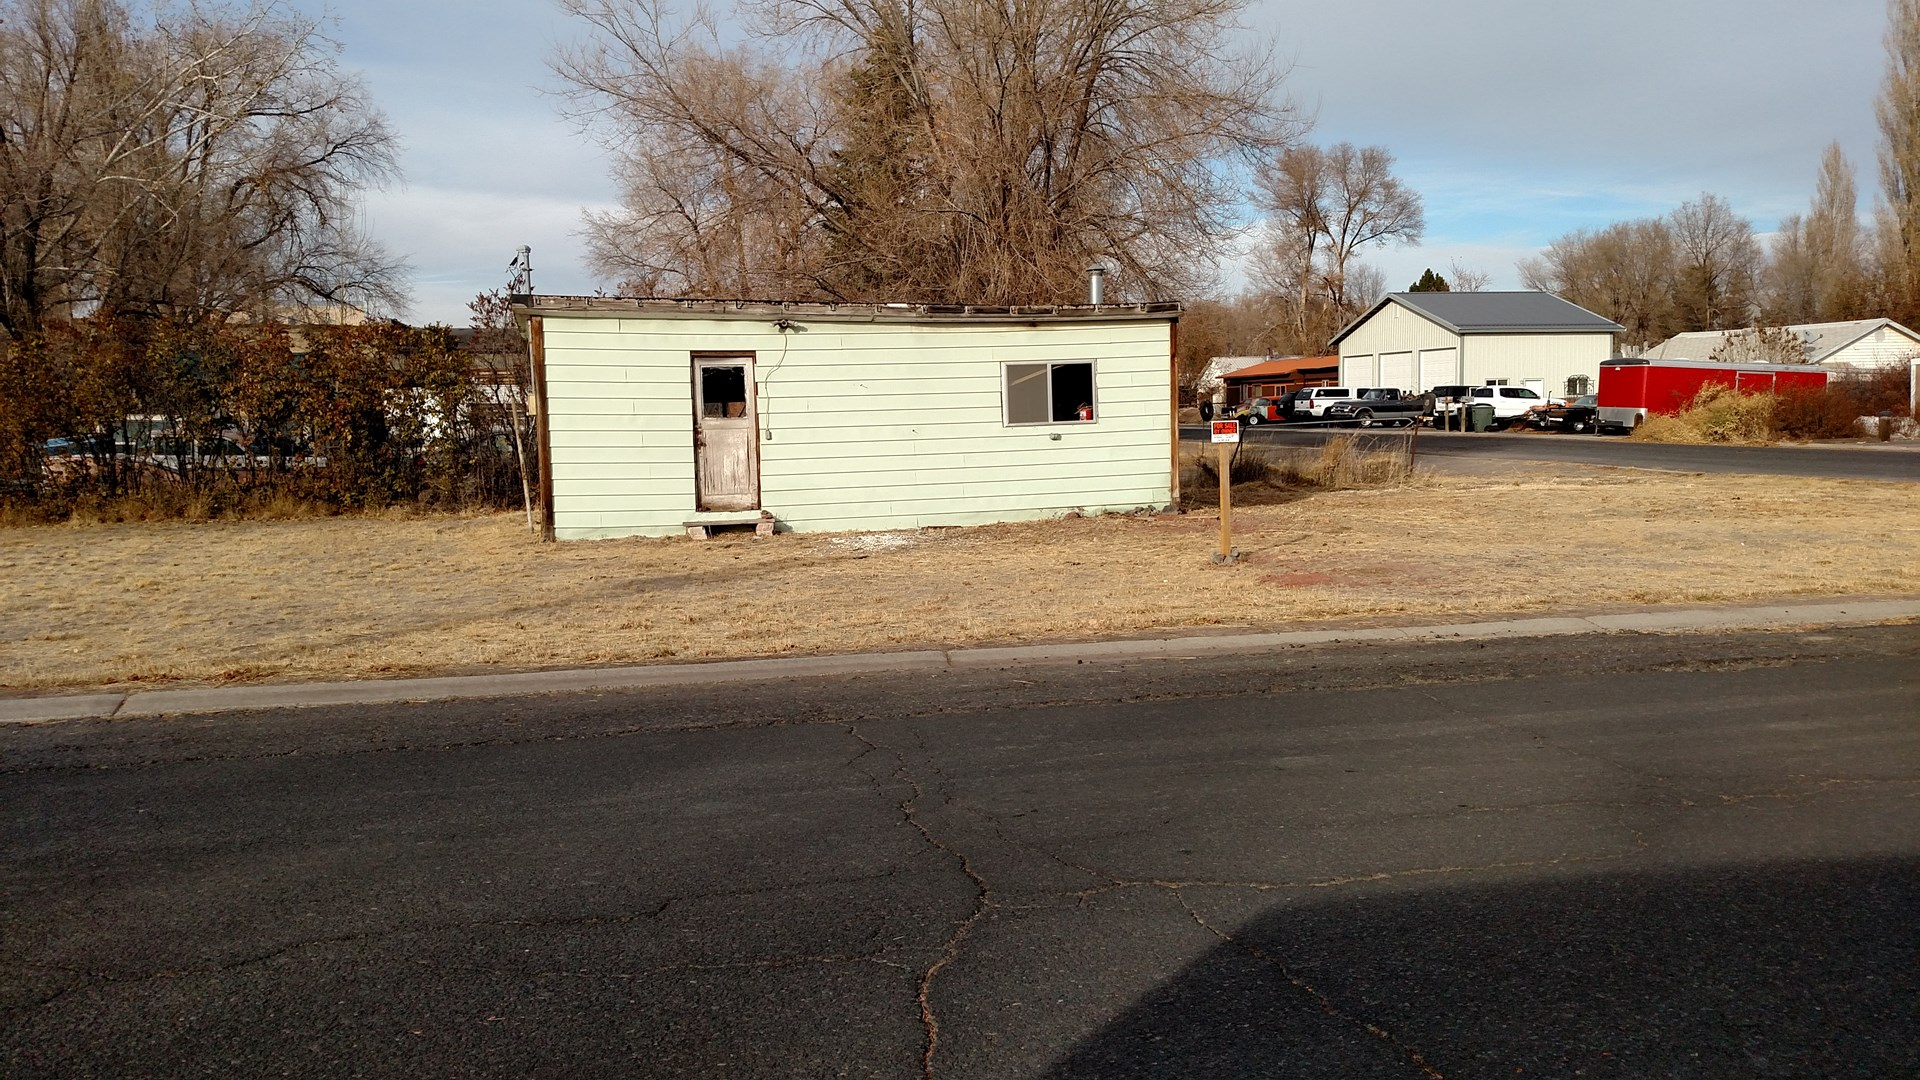 LOT FOR SALE IN BURNS OR ZONED COMMERCIAL